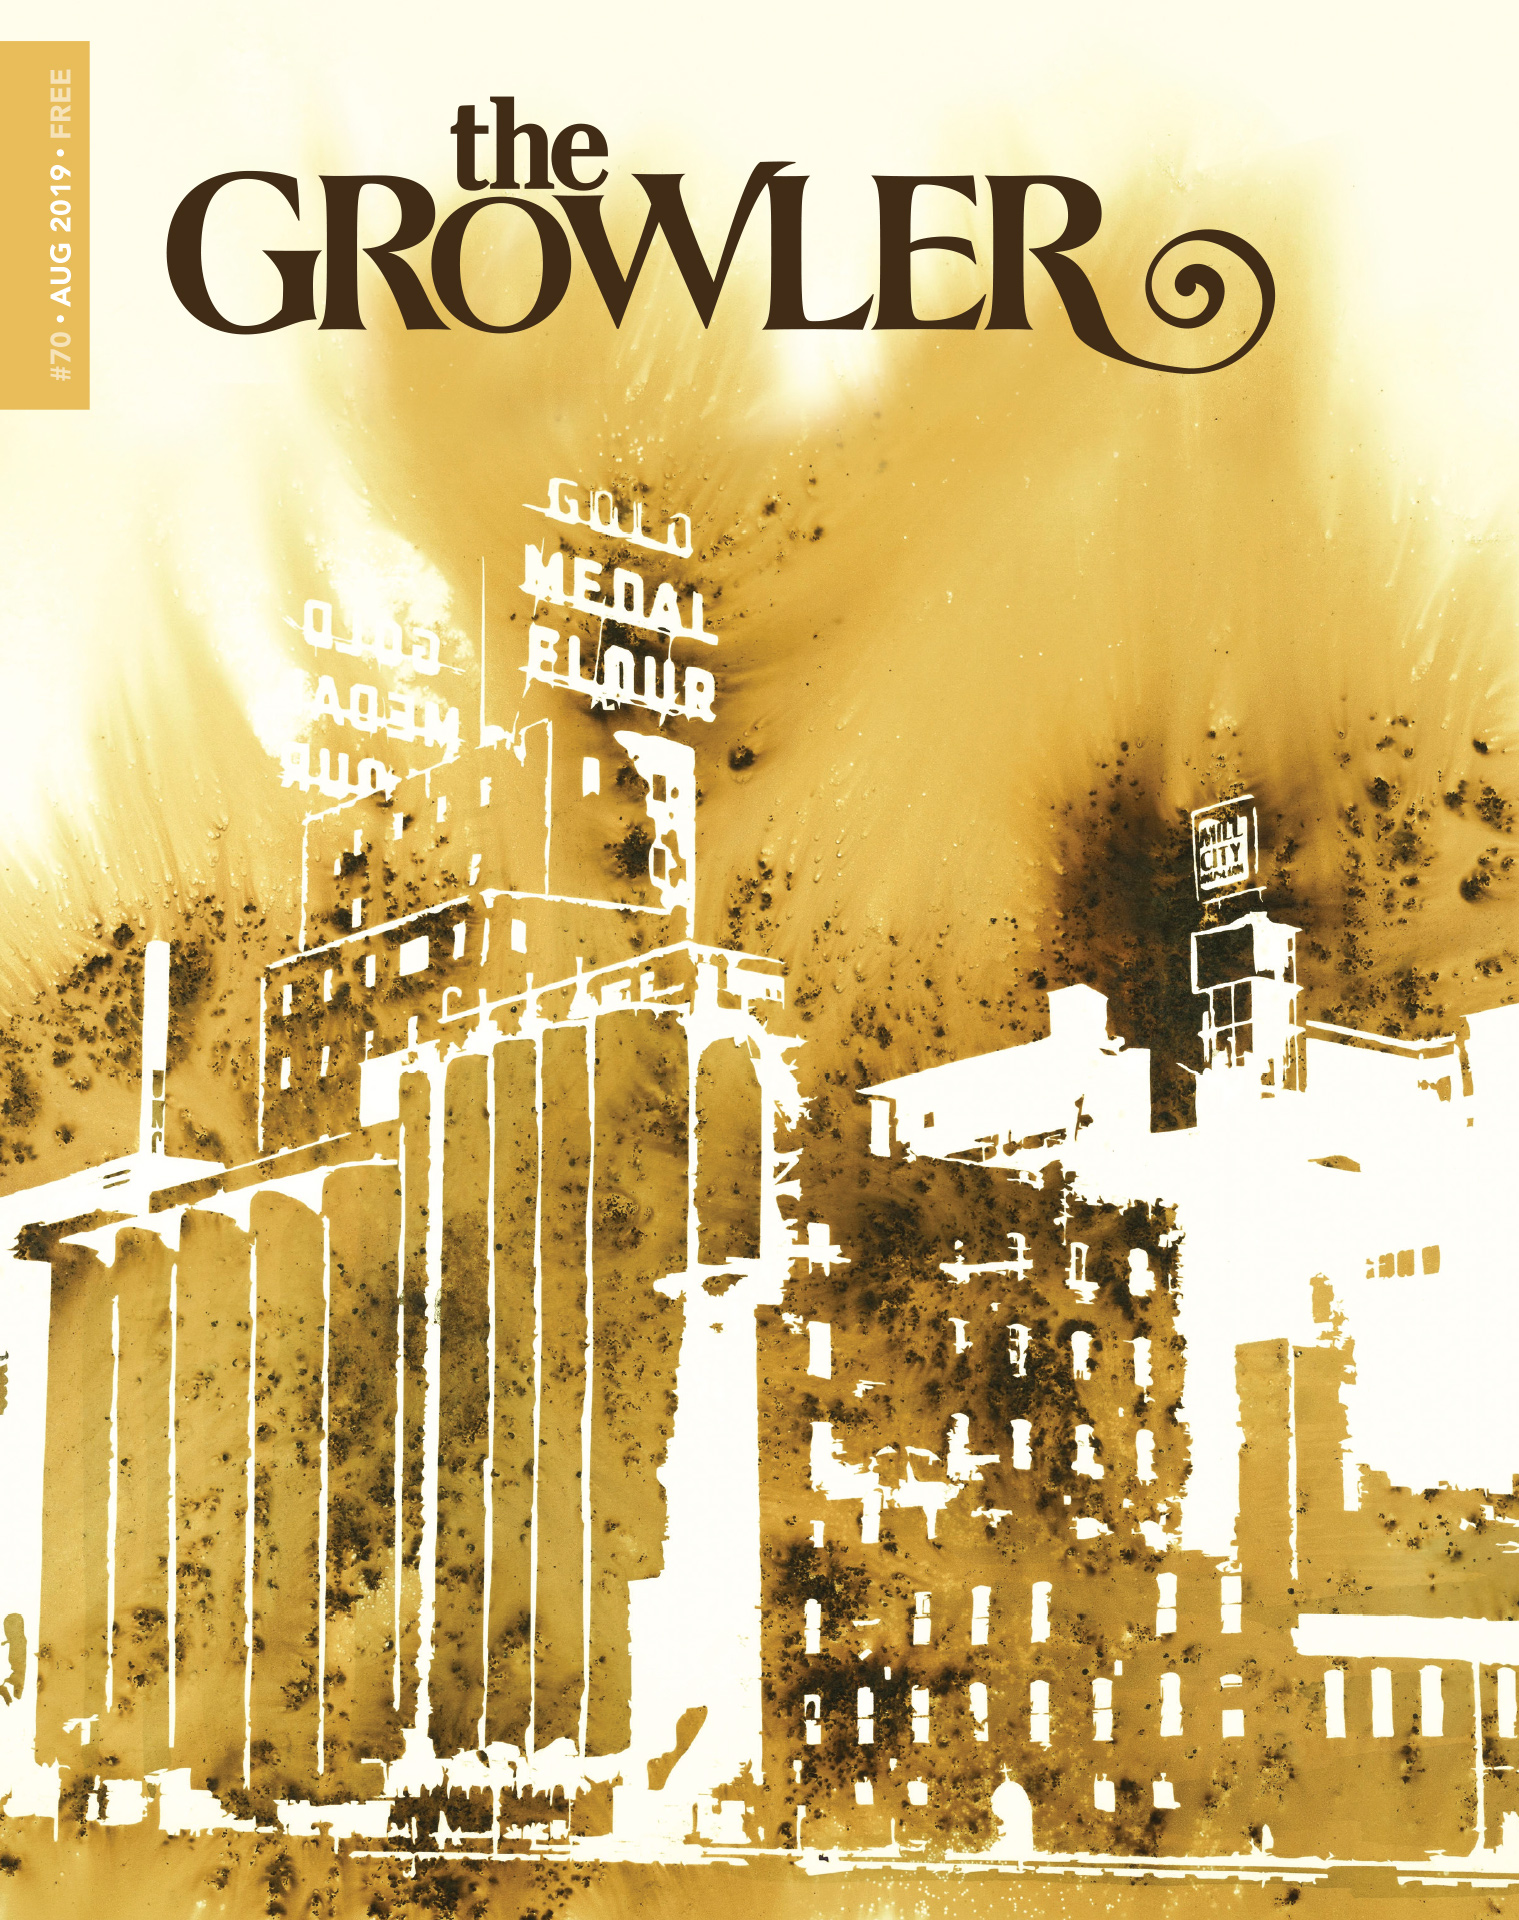 The Growler: Issue 70 – August 2019 – Fire